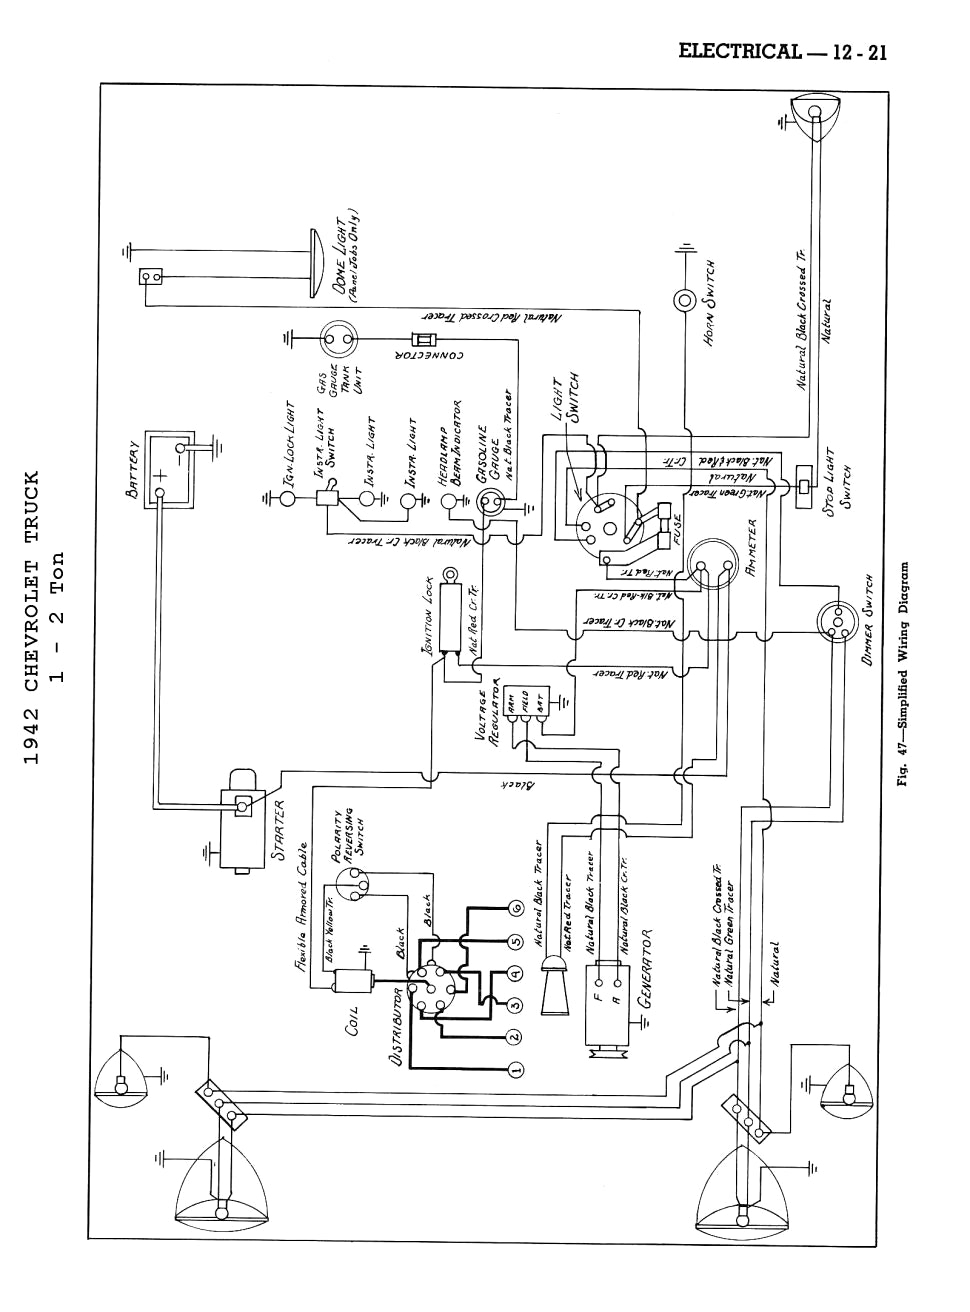 wiring diagram for thermostat with hvac